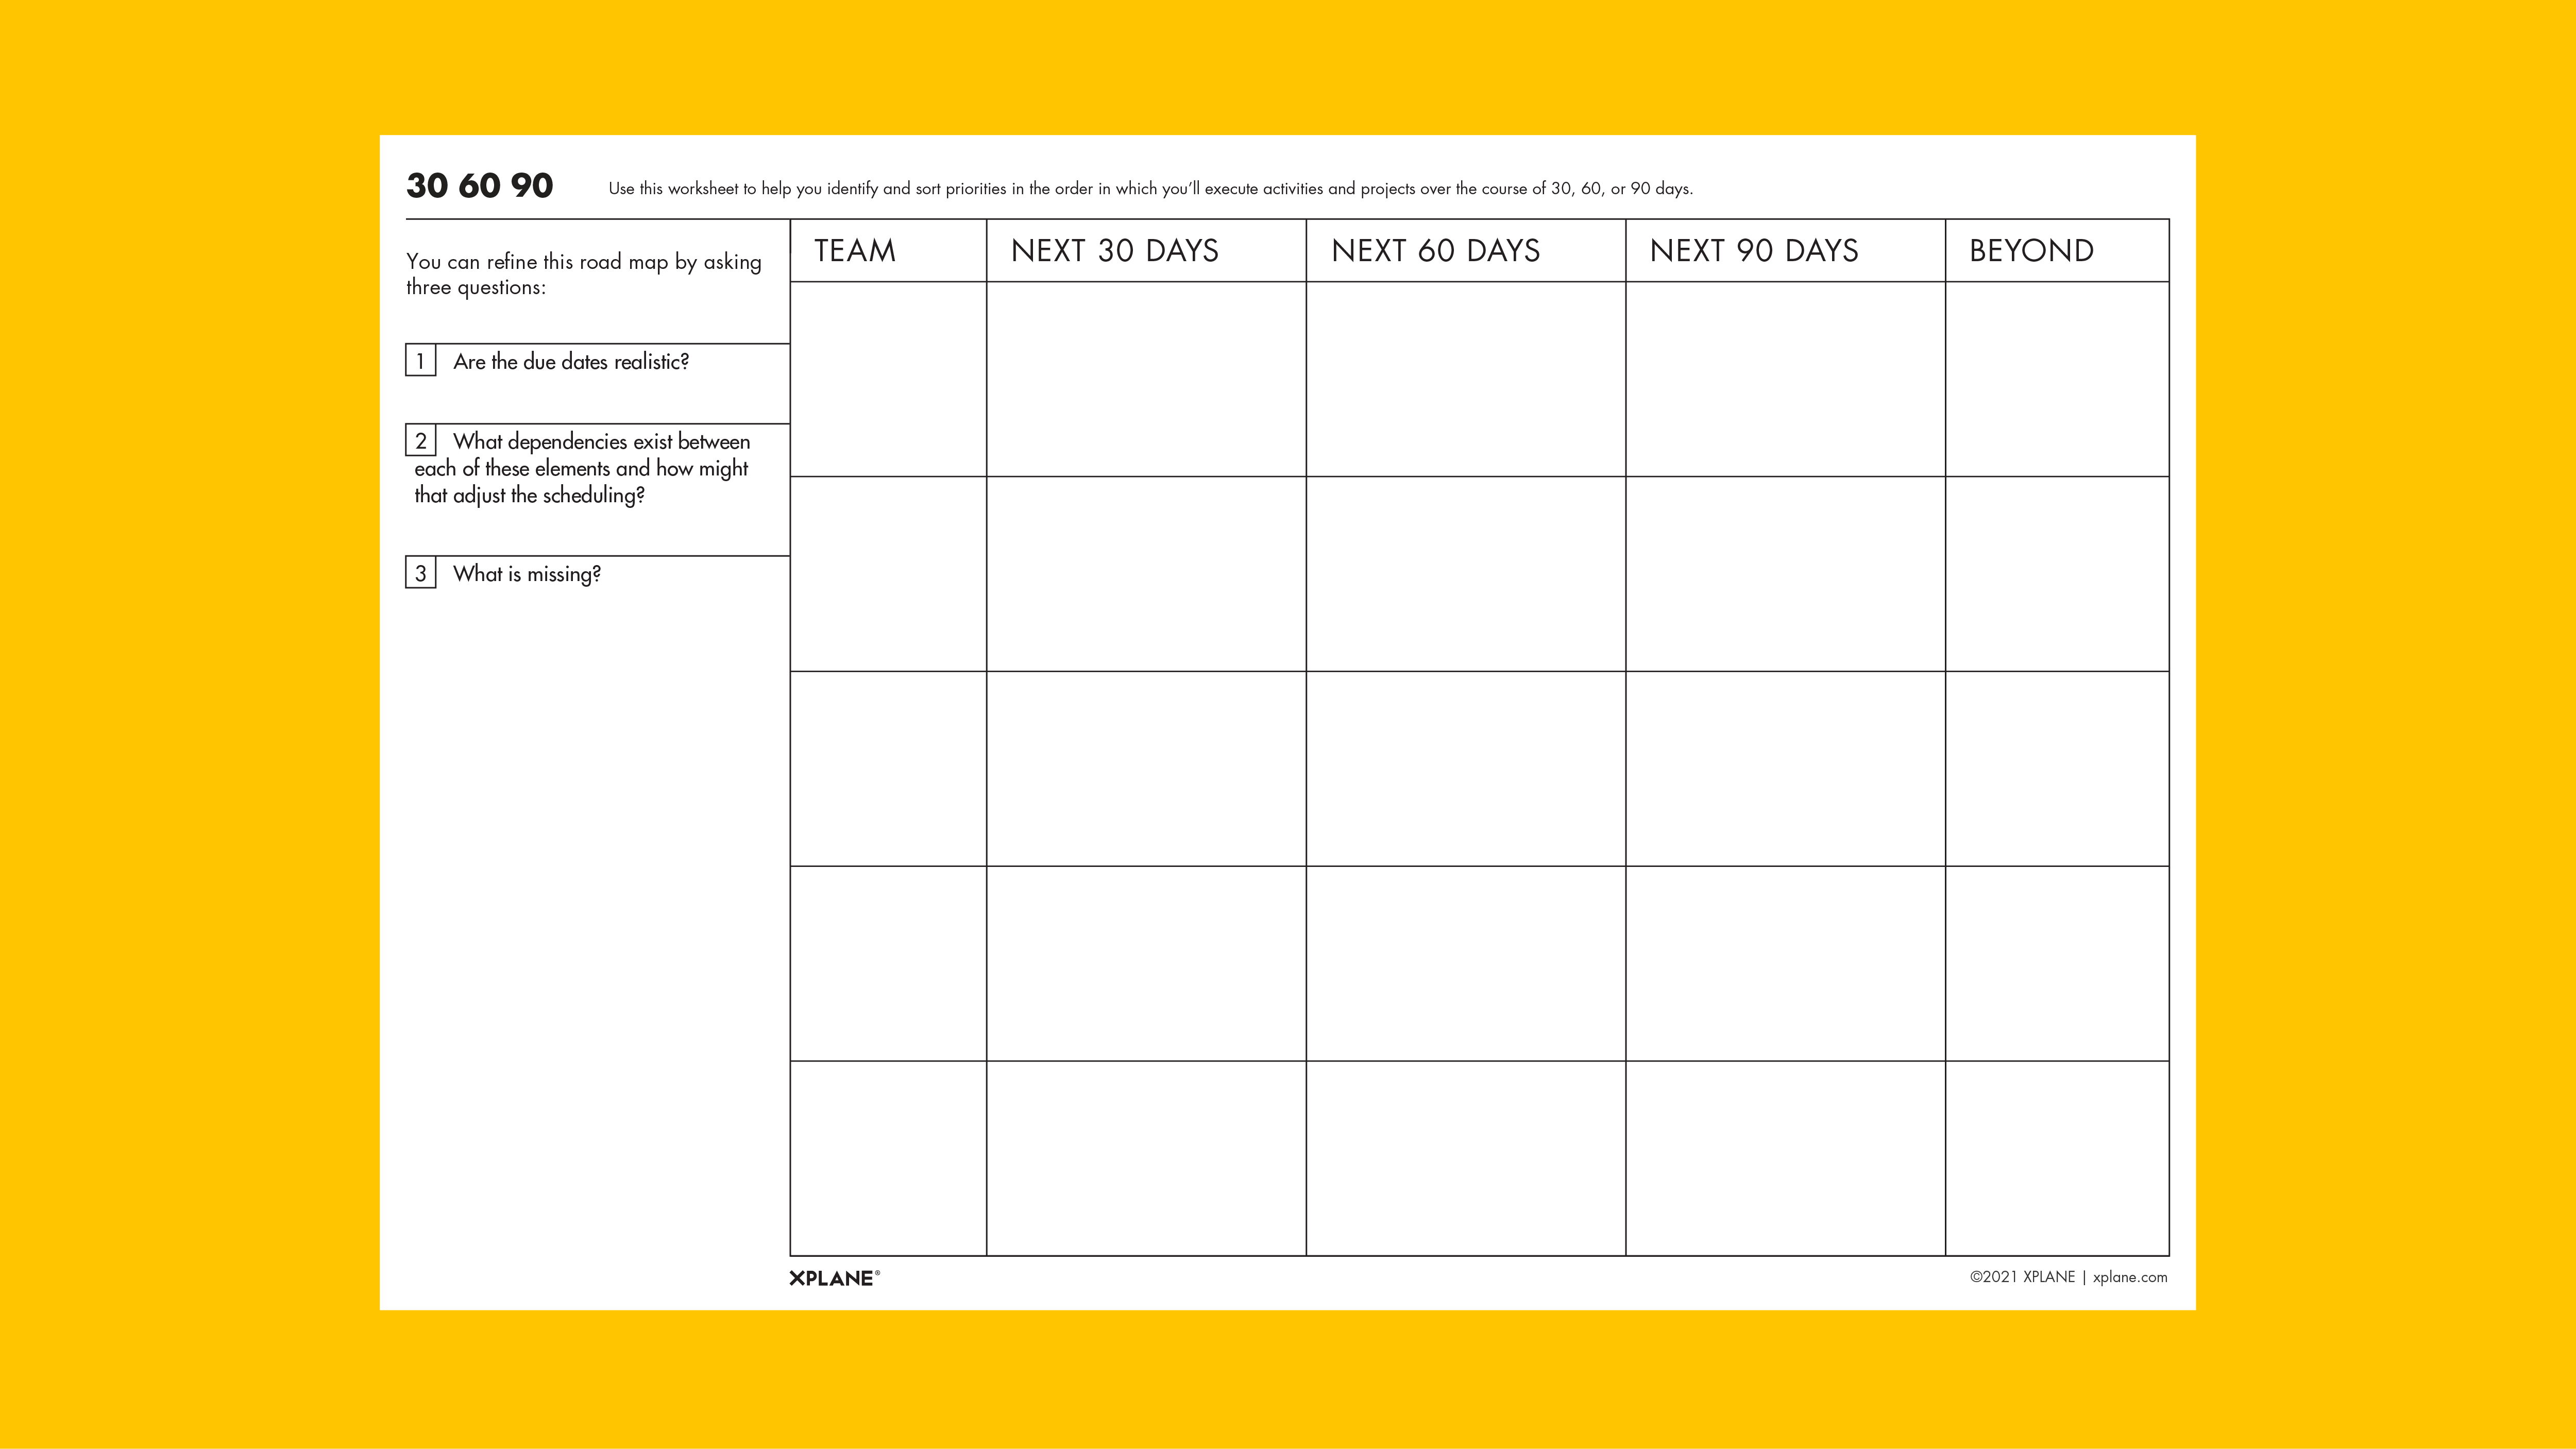 30 60 90 worksheet against yellow background